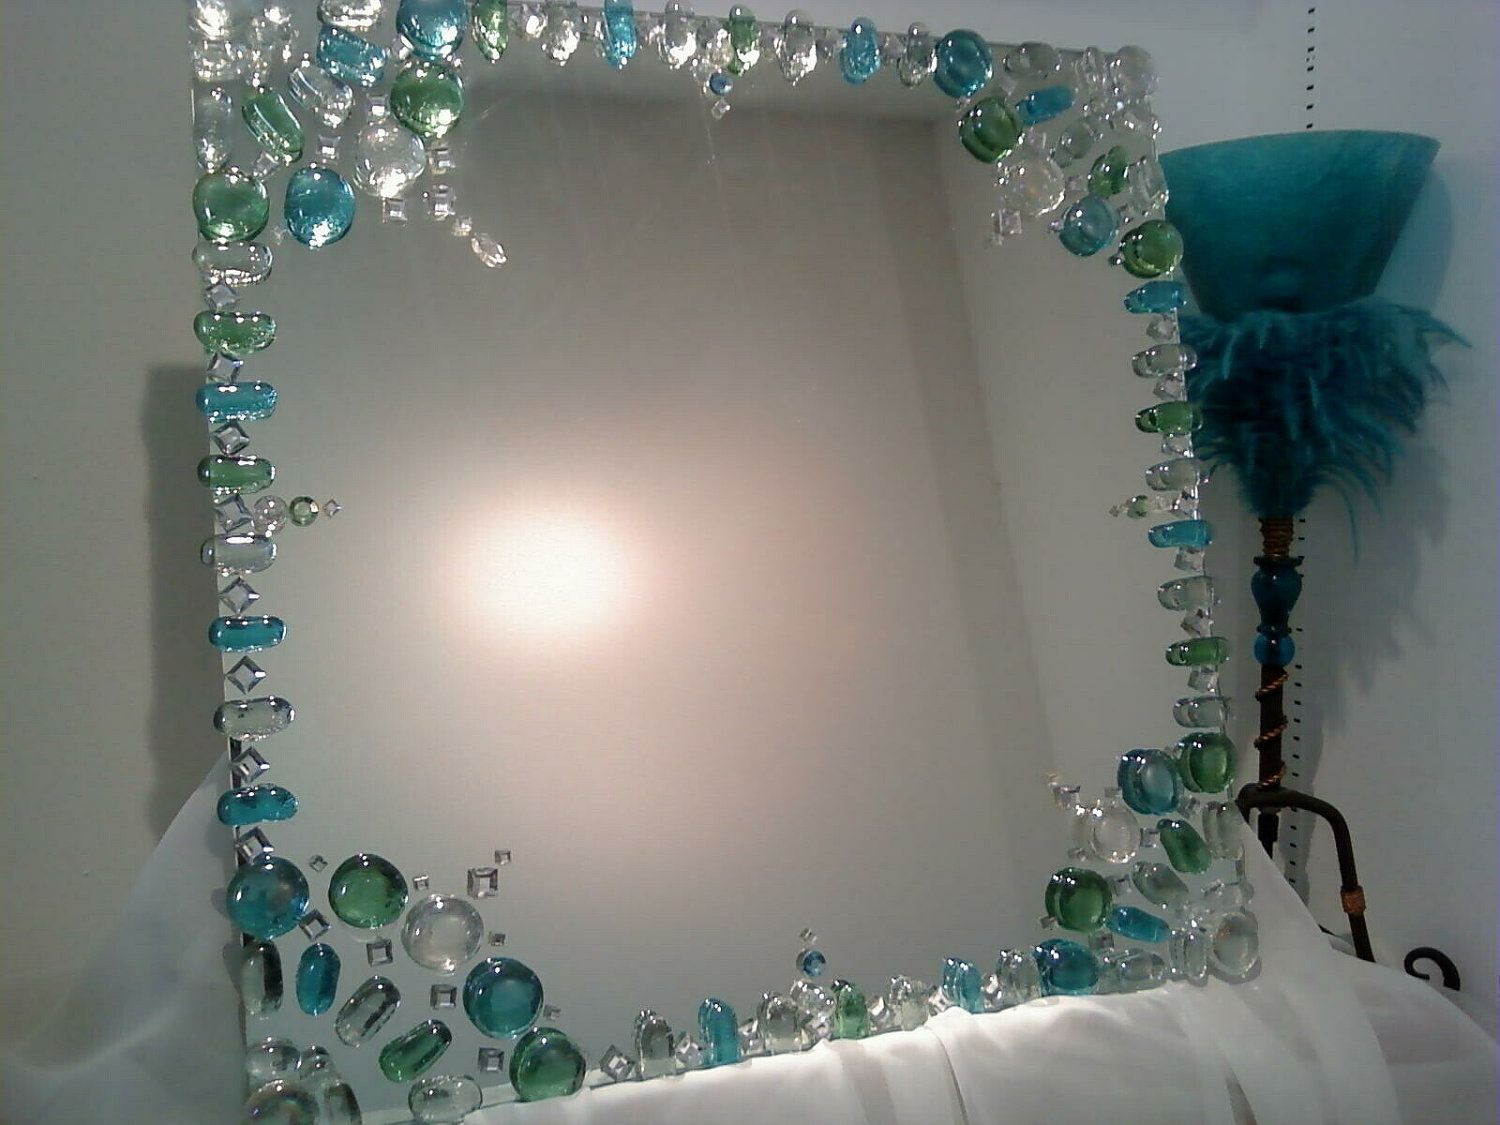 Mirror Design Idea Decorating The Edge With Gems Instead Of Frames Mirror Frame Diy Mirror Decor Diy Mirror